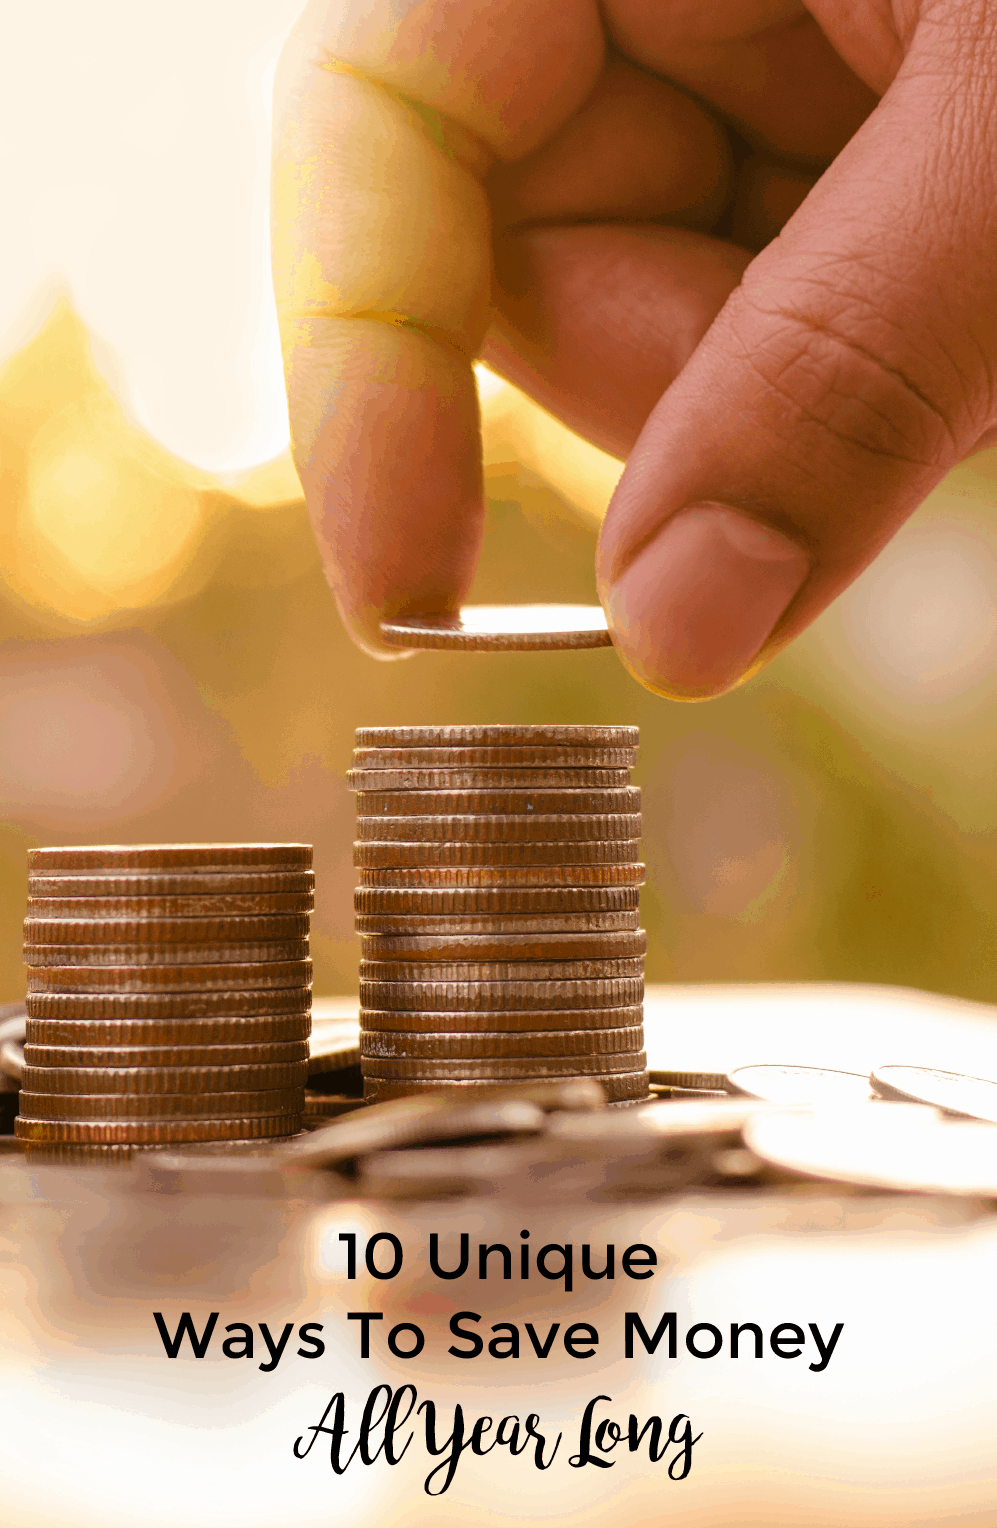 10 Unique Ways To Save Money All Year Long